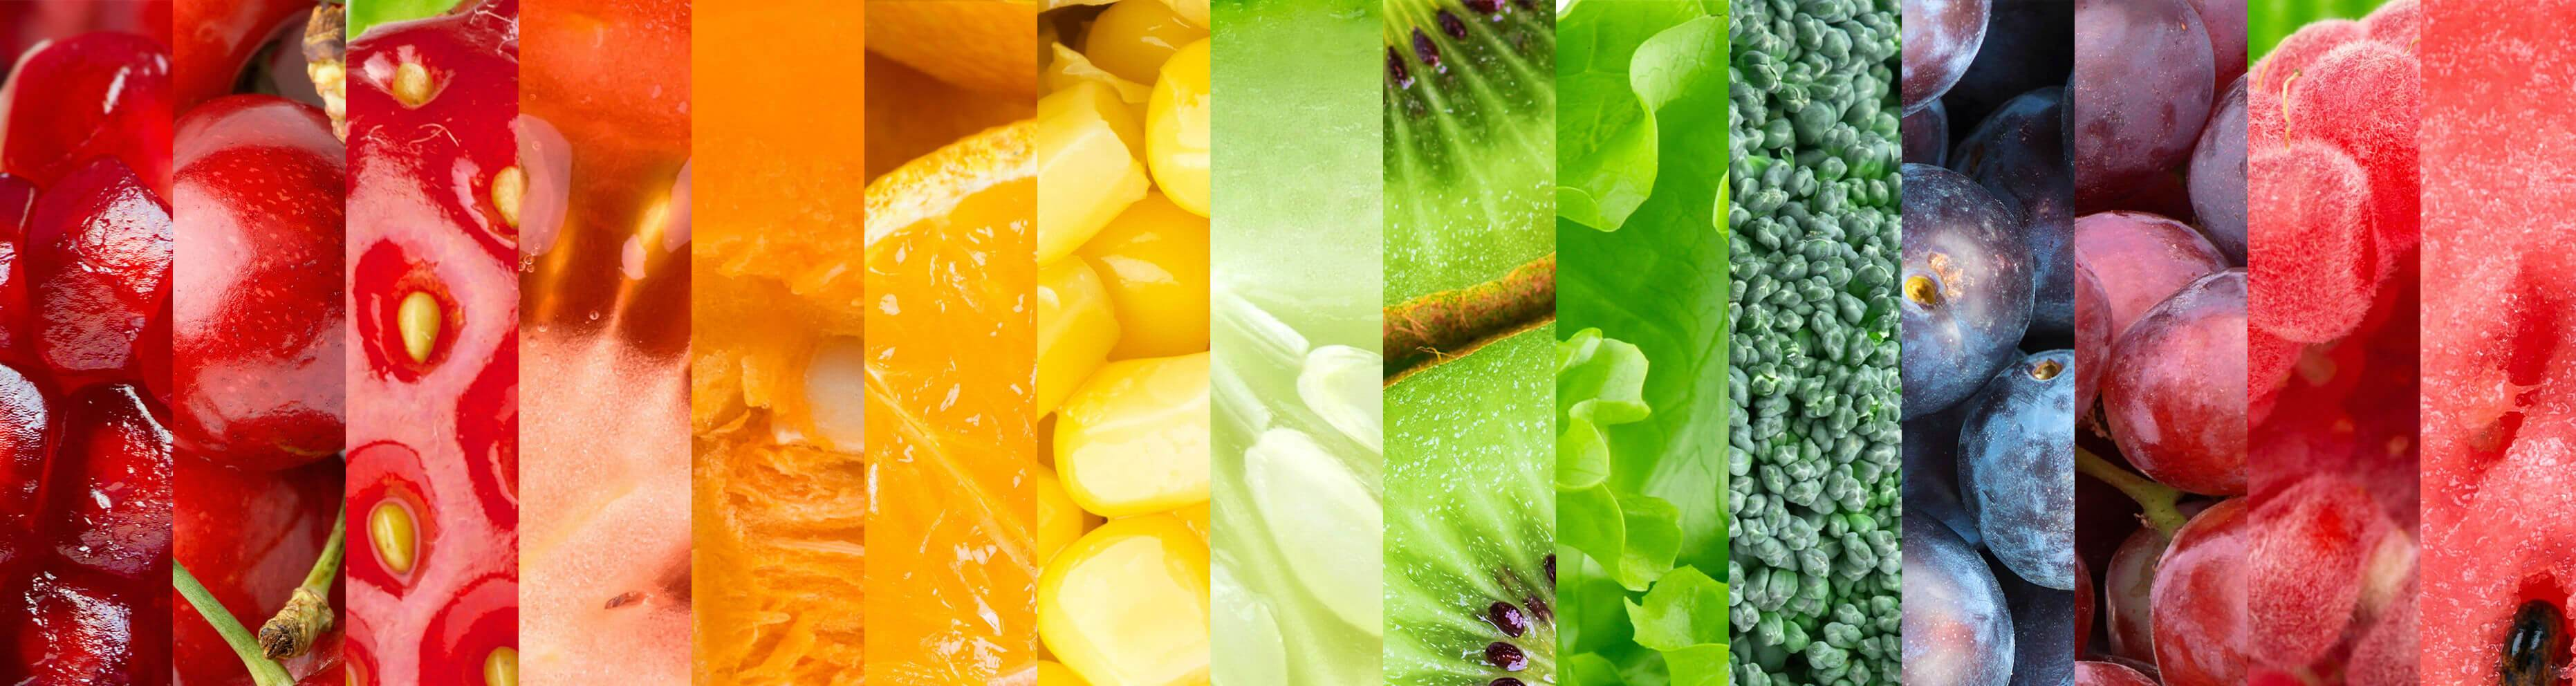 HEALTHY-FOOD-BACKGROUND-2